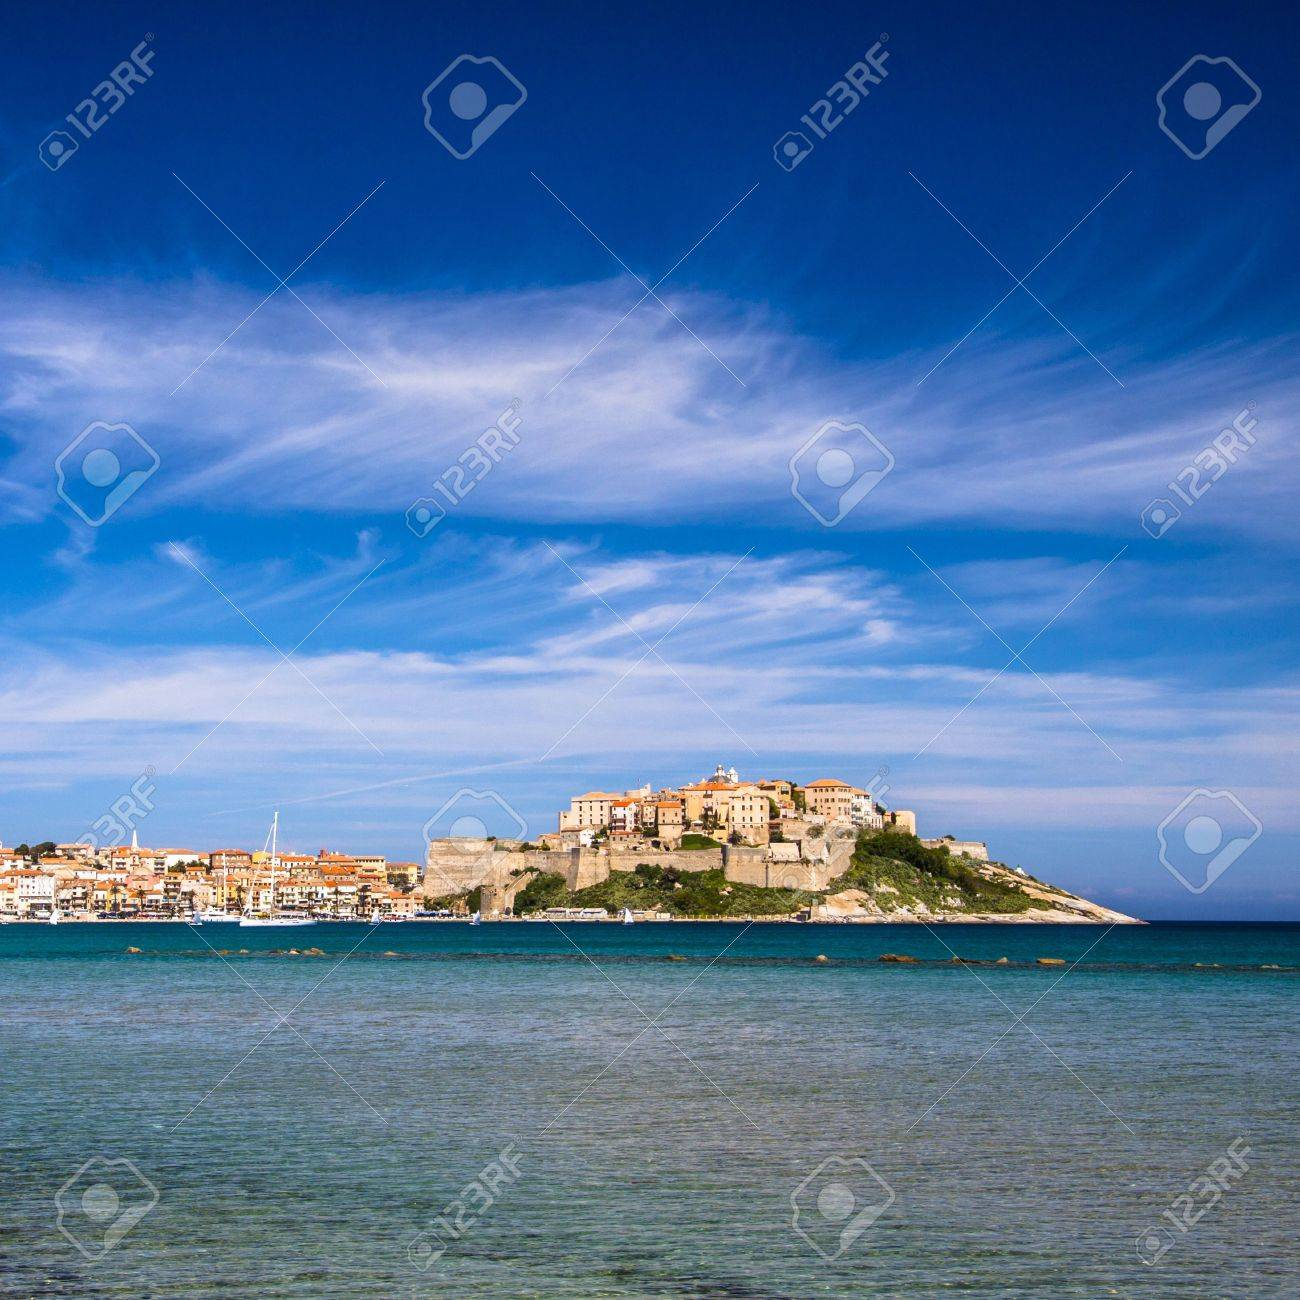 Calvi - Colorful coastal town on the island of Corsica, France. According to legend, Christopher Columbus supposedly was born there. - 13769148